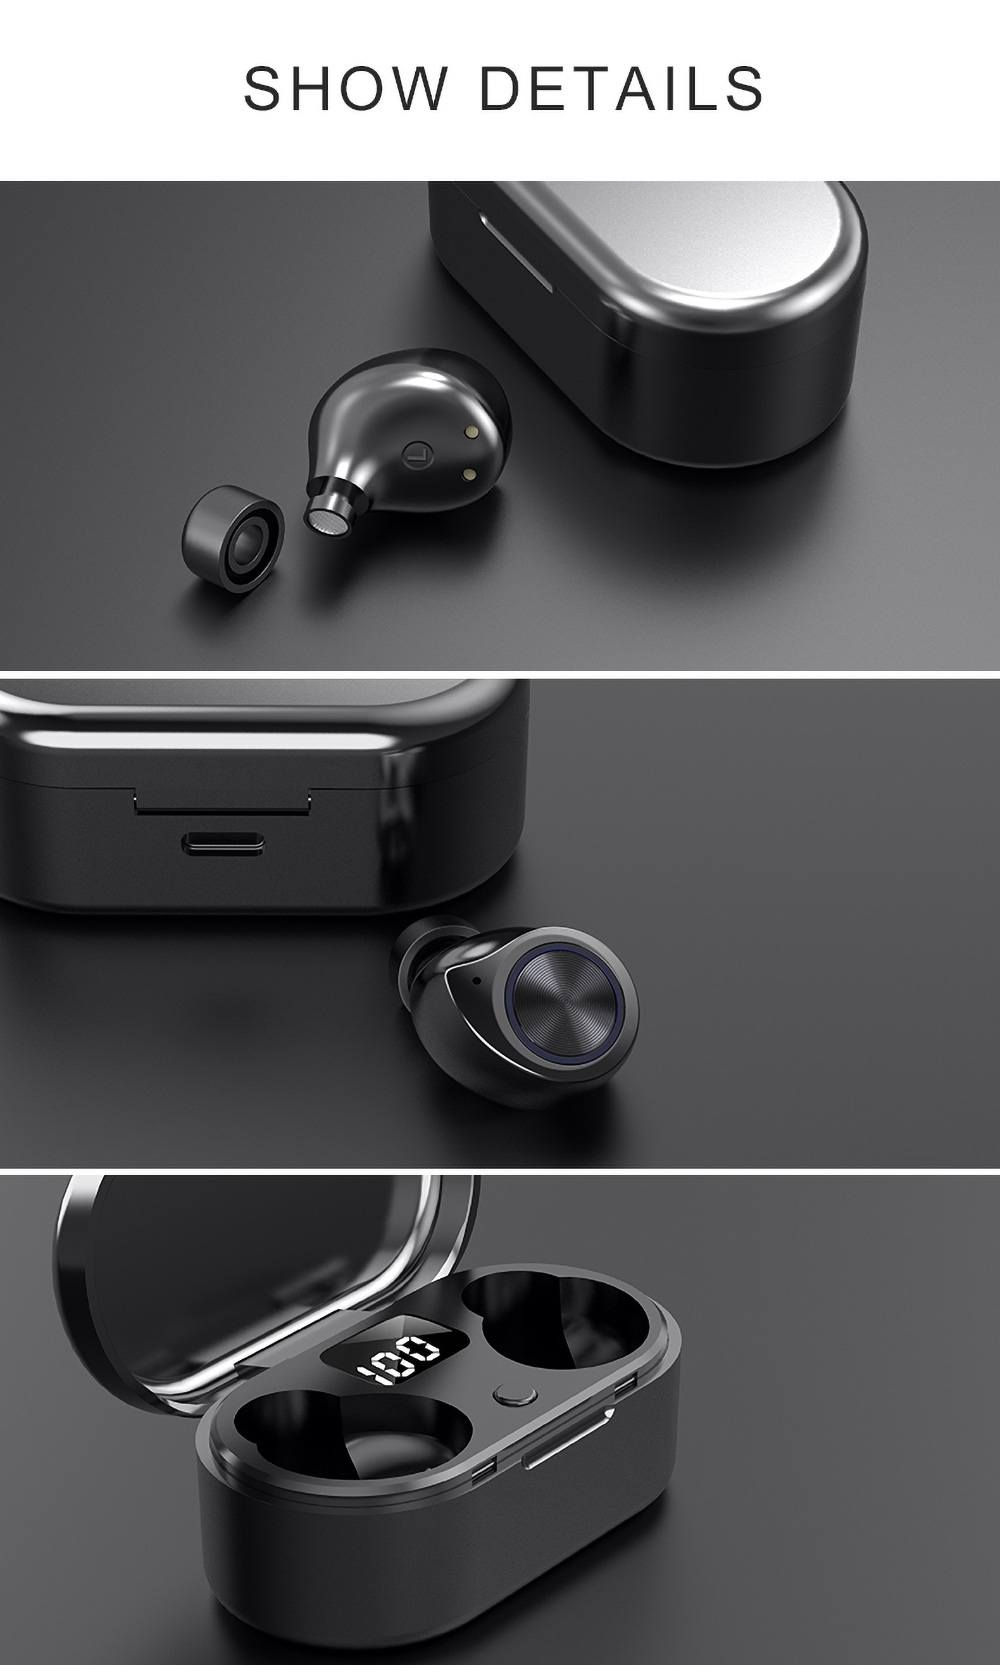 TW80 Bluetooth 5.0 True Wireless Earphones Siri LED Power Display 3.5 Hours Playtime - Black